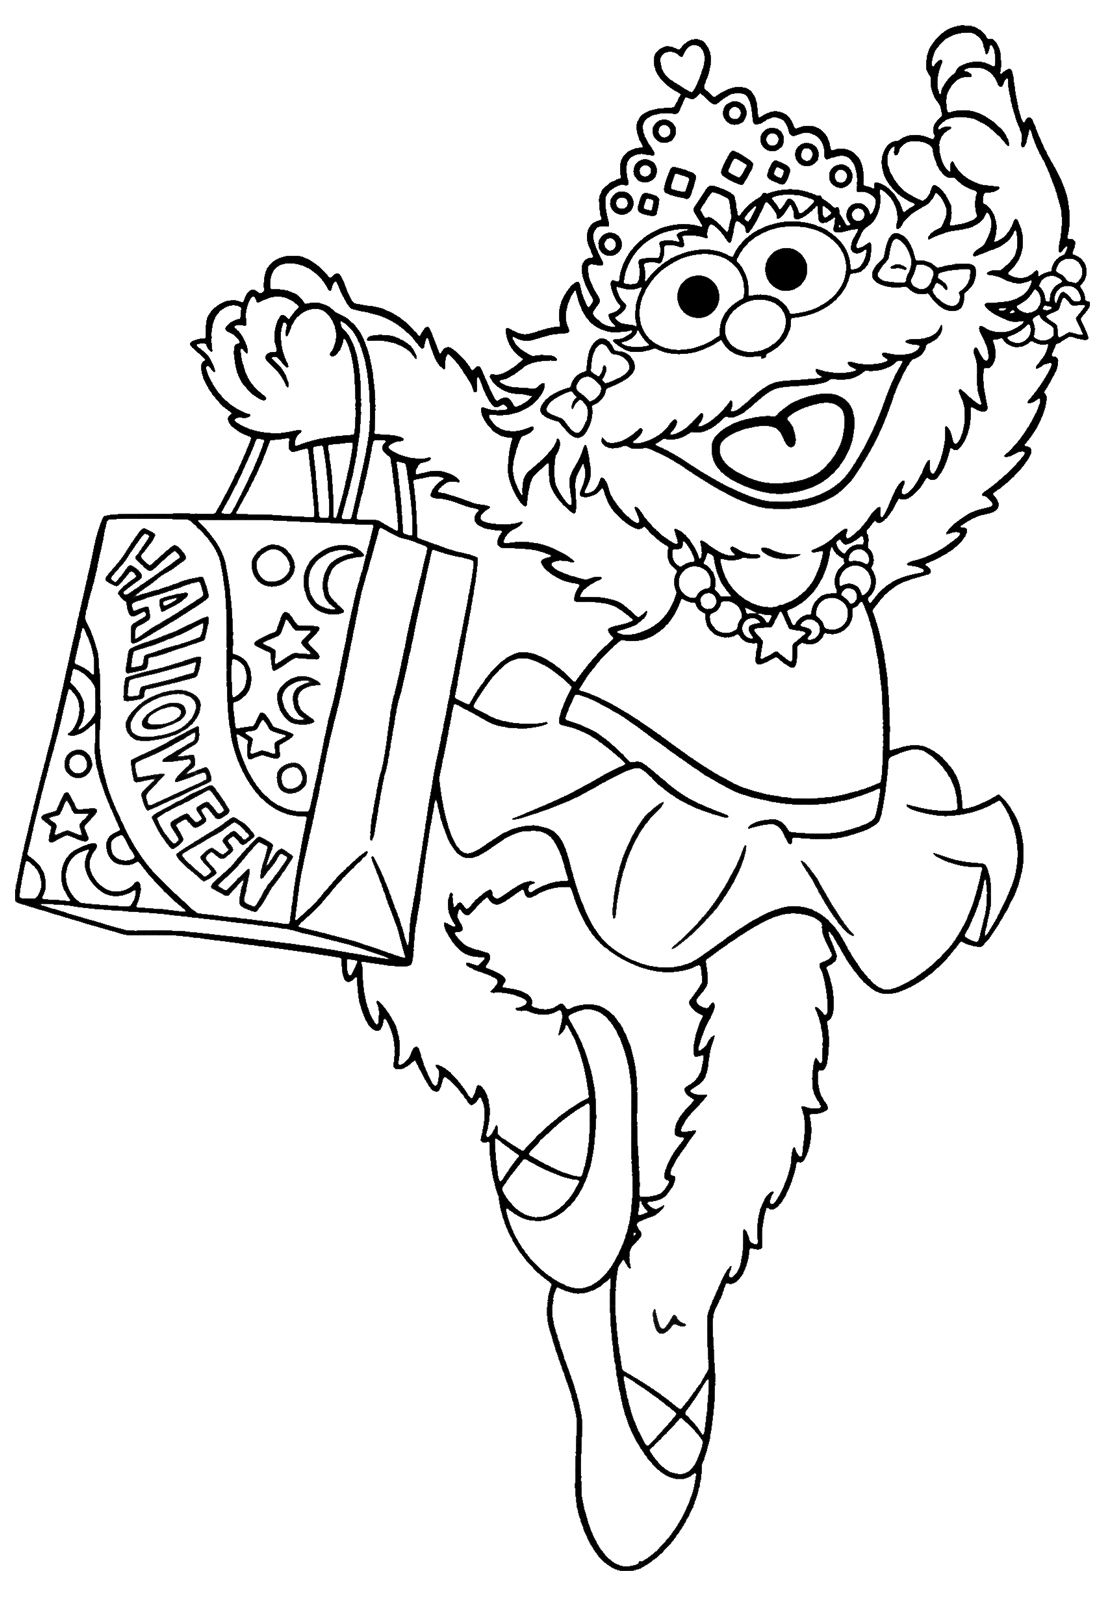 Free coloring pages elmo - Free Halloween Coloring Pages Printables